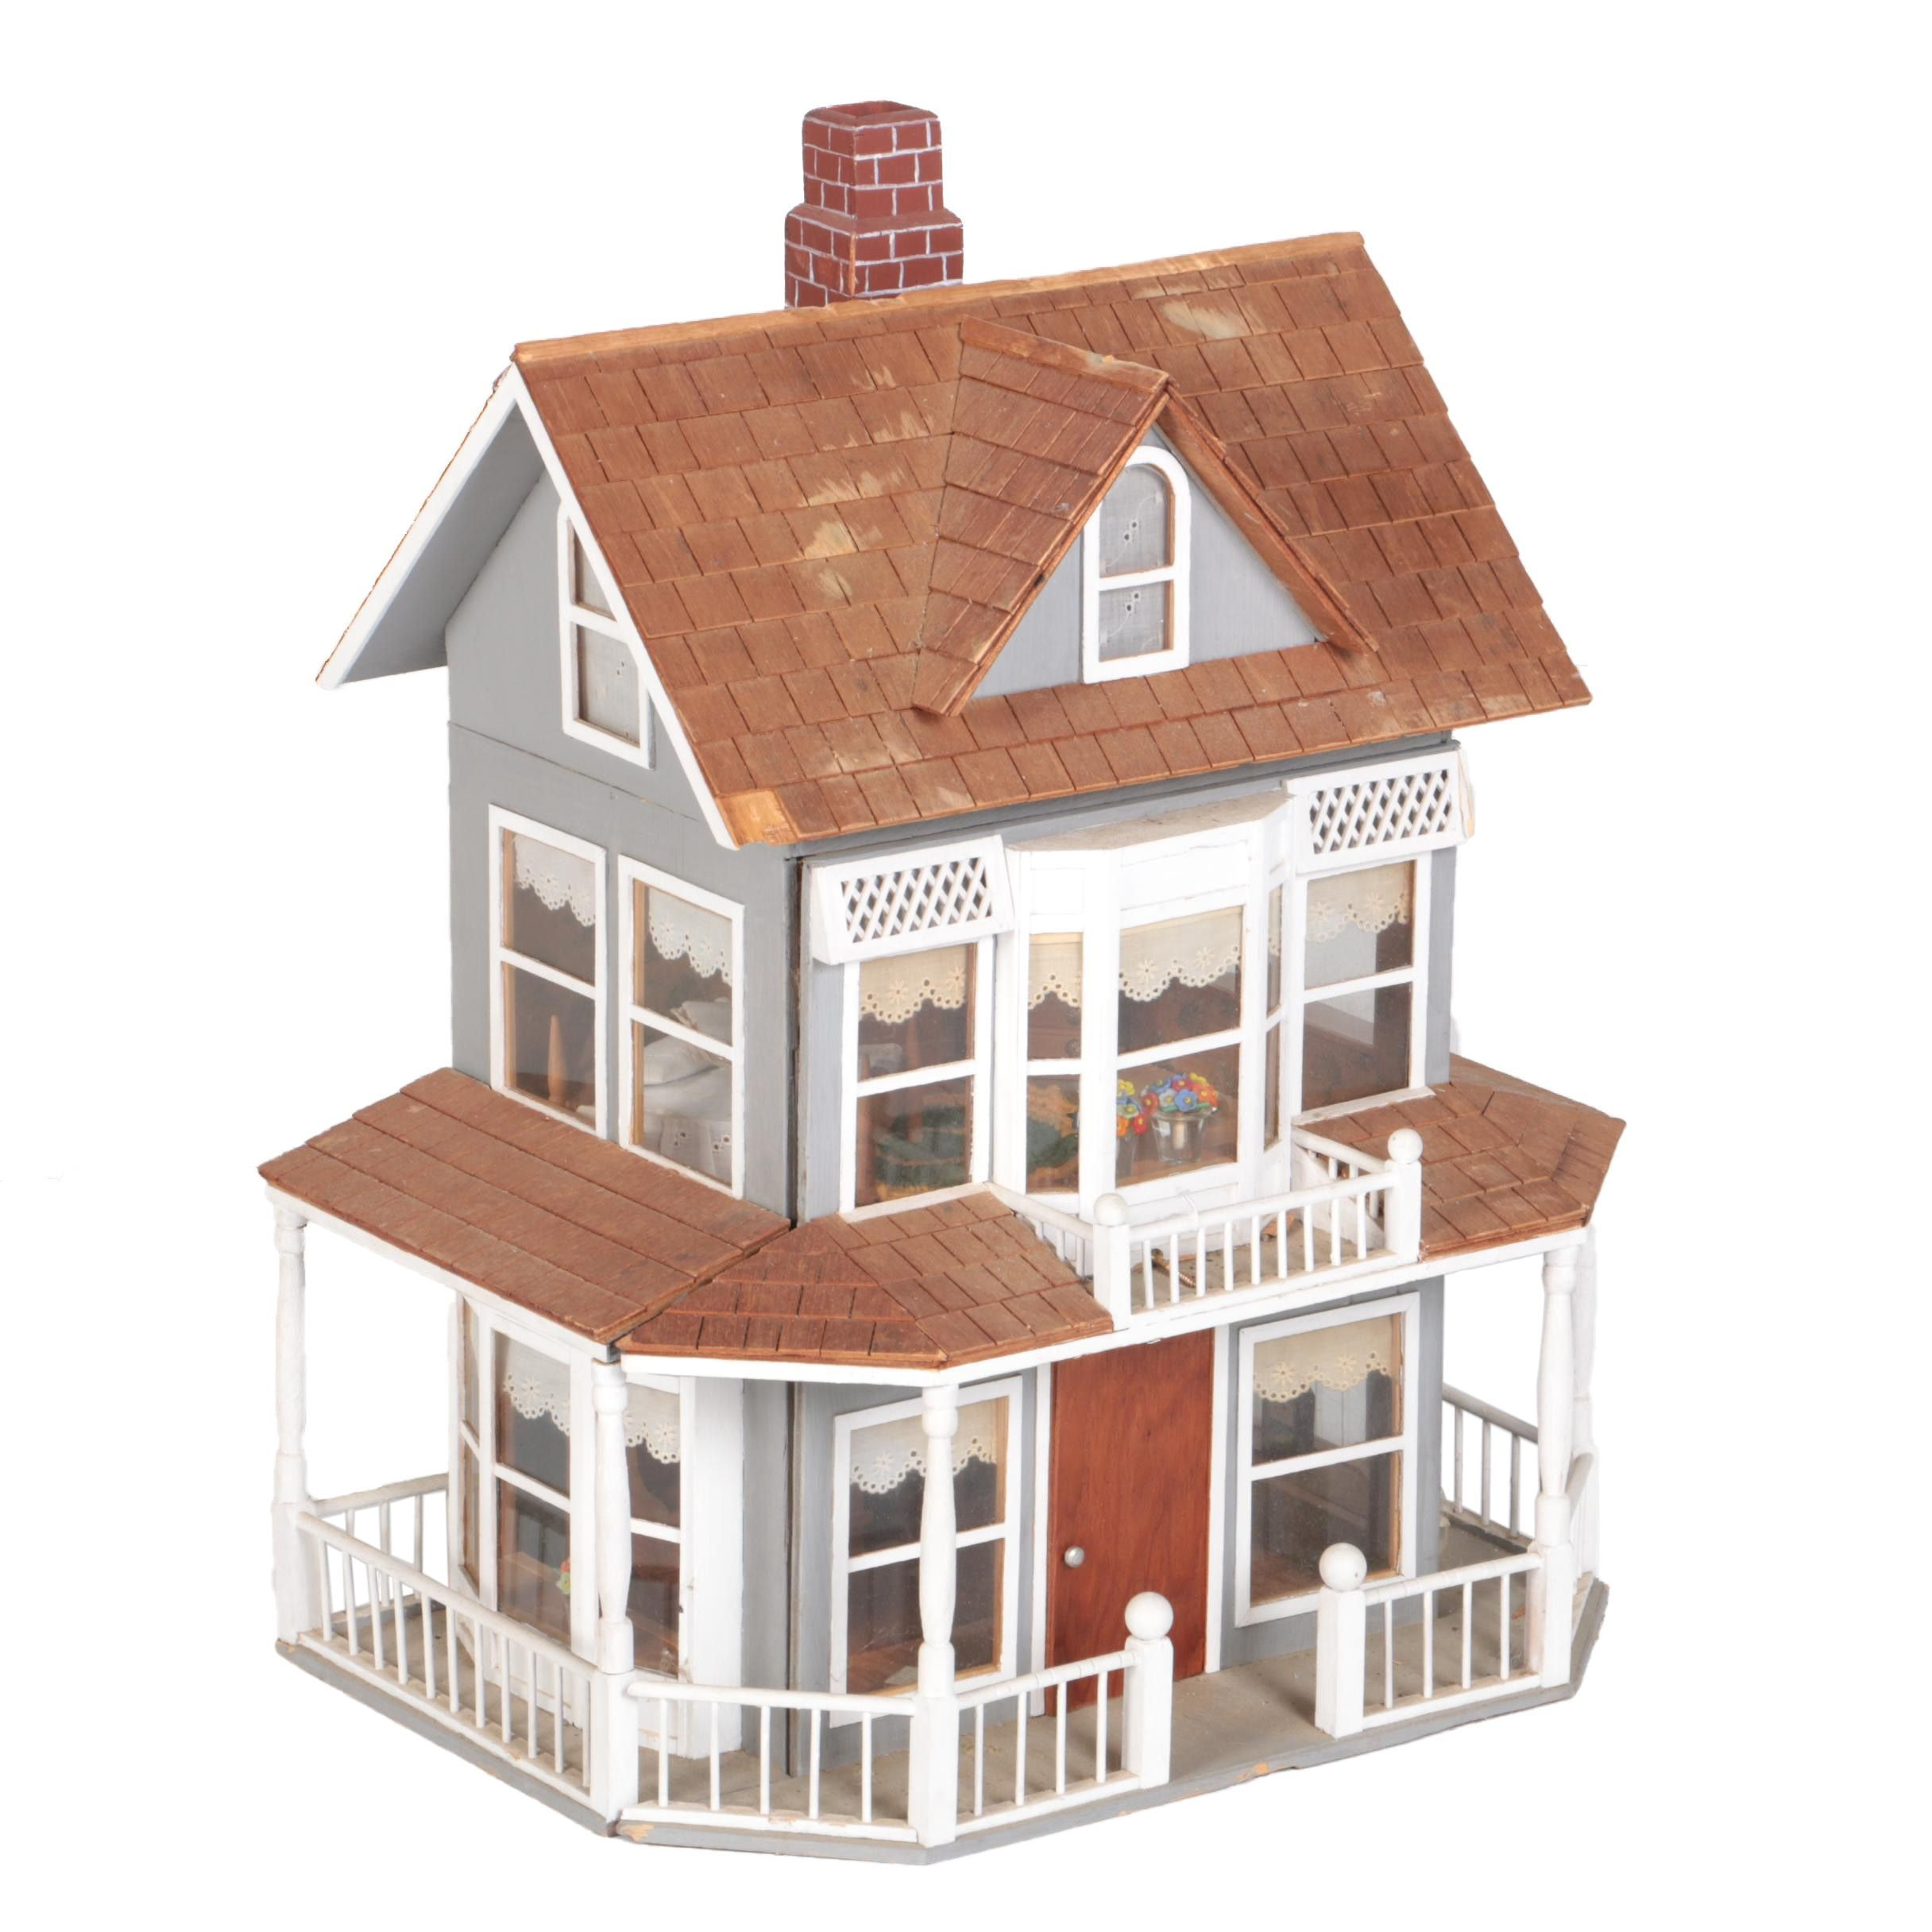 Vintage Wooden Dollhouse with Furnishings